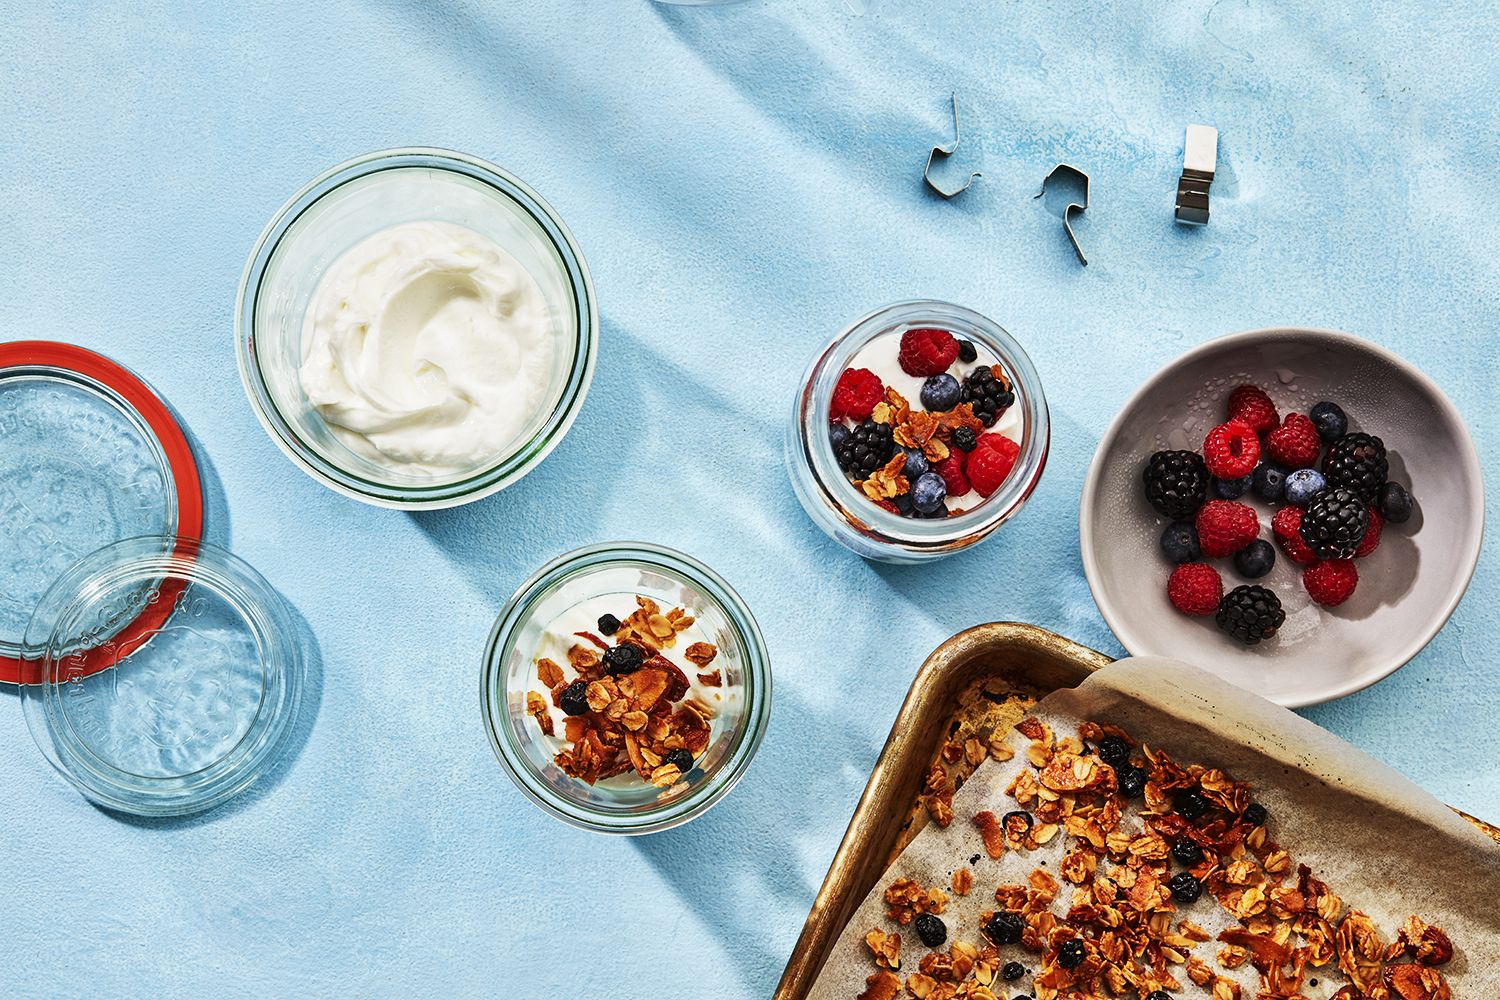 20 Breakfast Meal Prep Ideas That Will Make Your Mornings So Much Easier